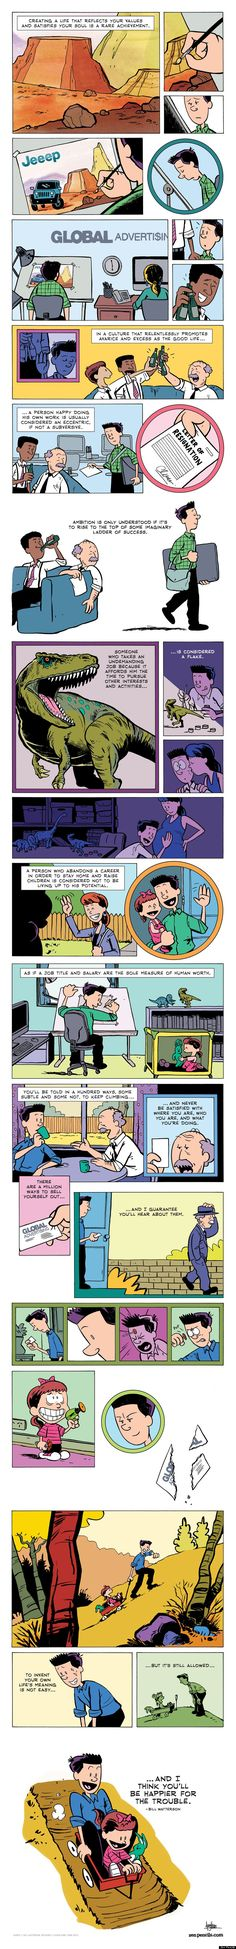 BILL WATTERSON: A cartoonist's advice - Inspiring words from the creator of Calvin and Hobbes, drawn by Zen Pencils Calvin Und Hobbes, Calvin And Hobbes Comics, Life Advice, Good Advice, Career Advice, Career Choices, Advice Quotes, Career Change, Comics Illustration